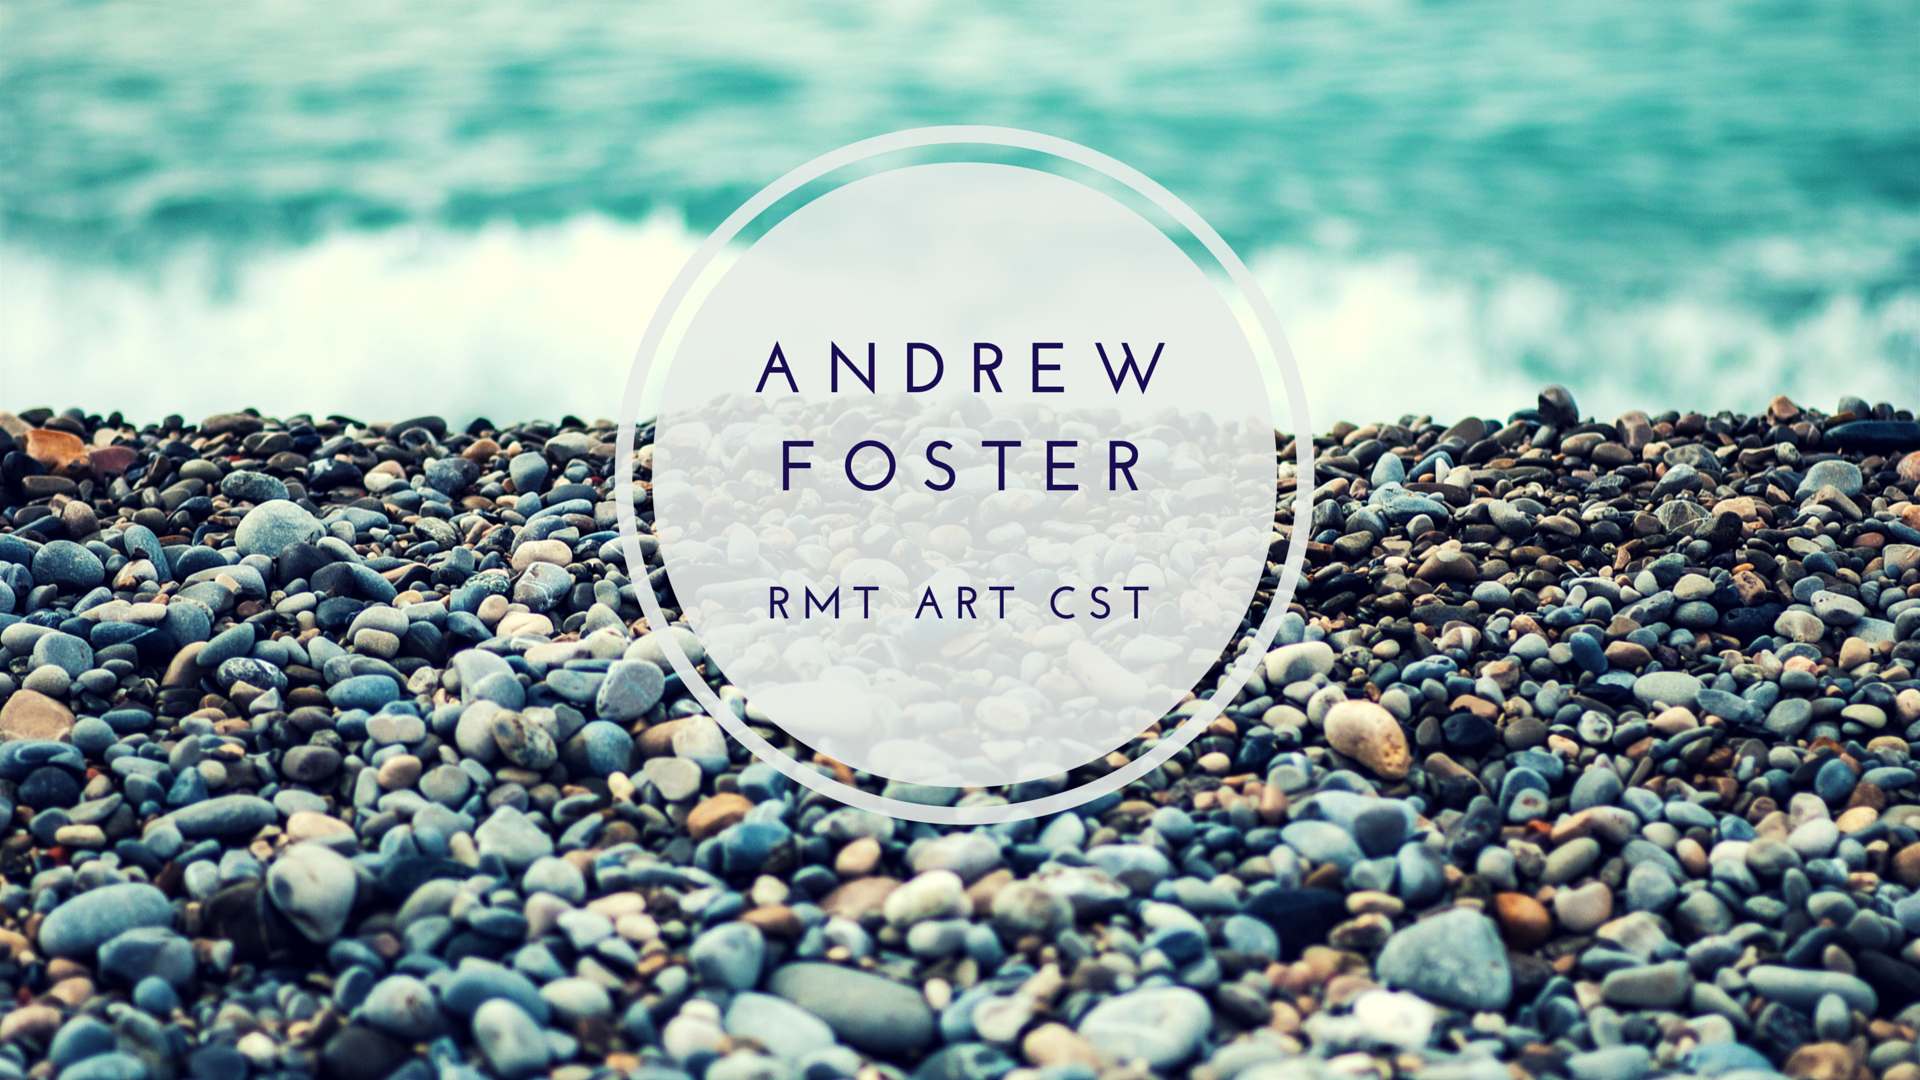 andrew foster Dr andrew foster, md is a hospital medicine specialist in columbus, oh and has been practicing for 7 years he graduated from oh state univ coll of med and pub hlth in 2011 and specializes in hospital medicine and orthopedic surgery.